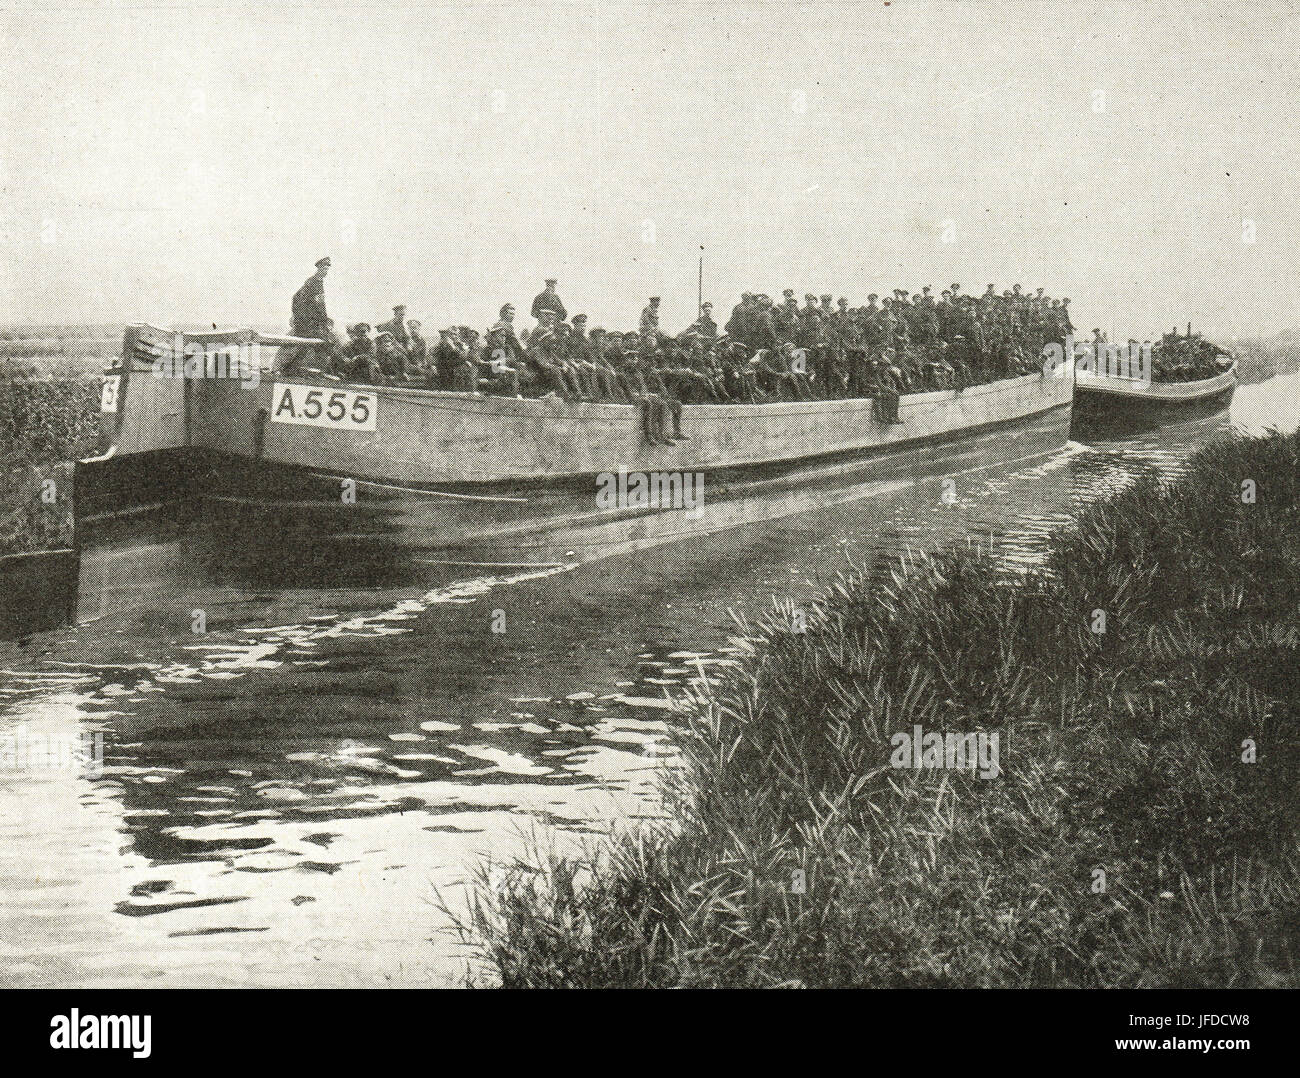 Troops being moved by canal barges, 1917 - Stock Image